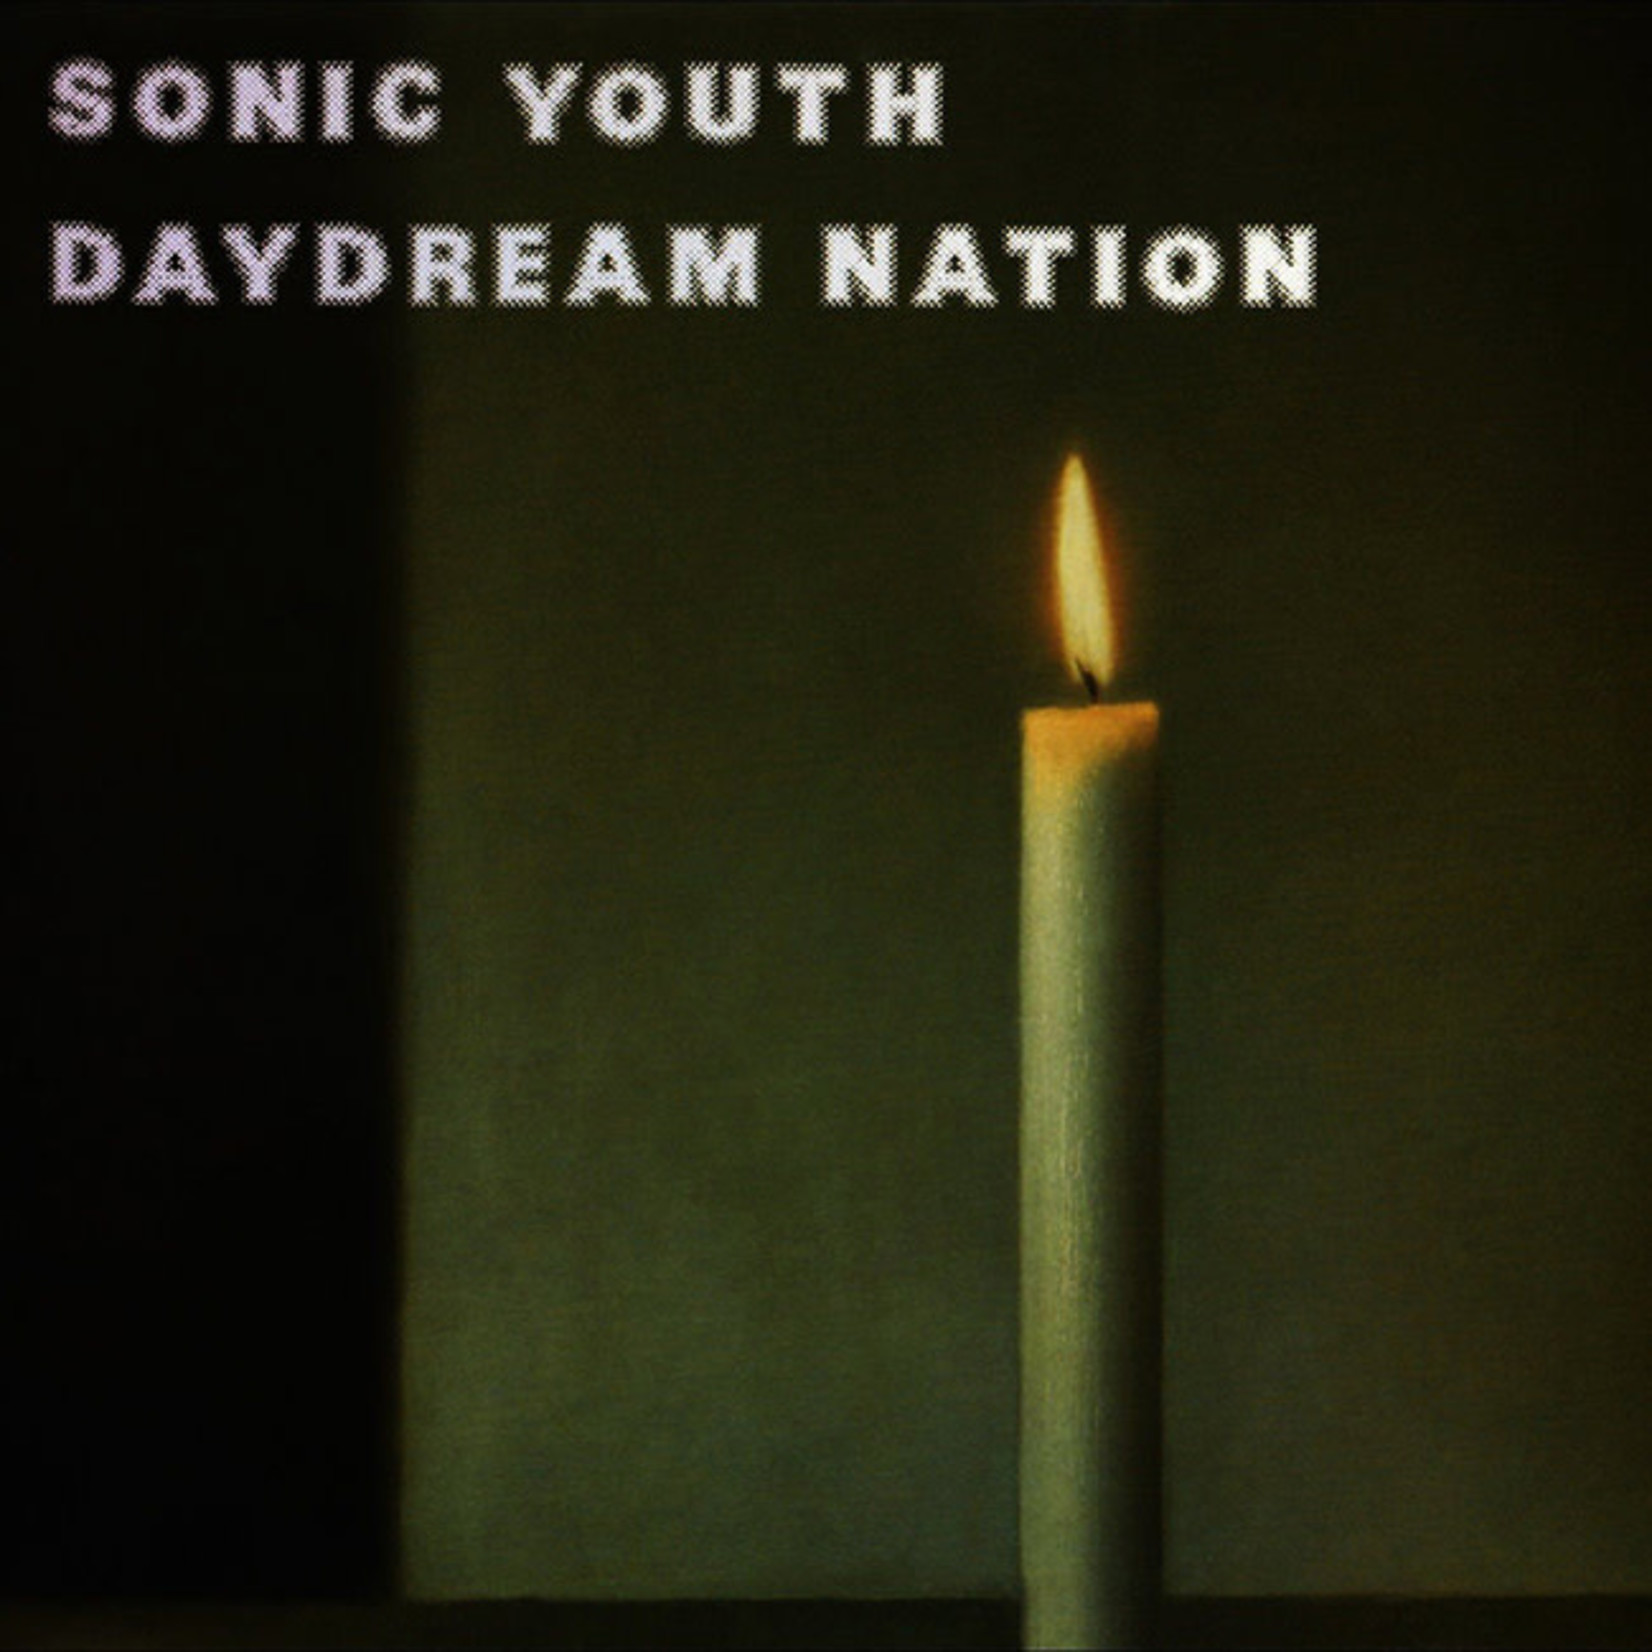 [New] Sonic Youth: Daydream Nation (2LP)